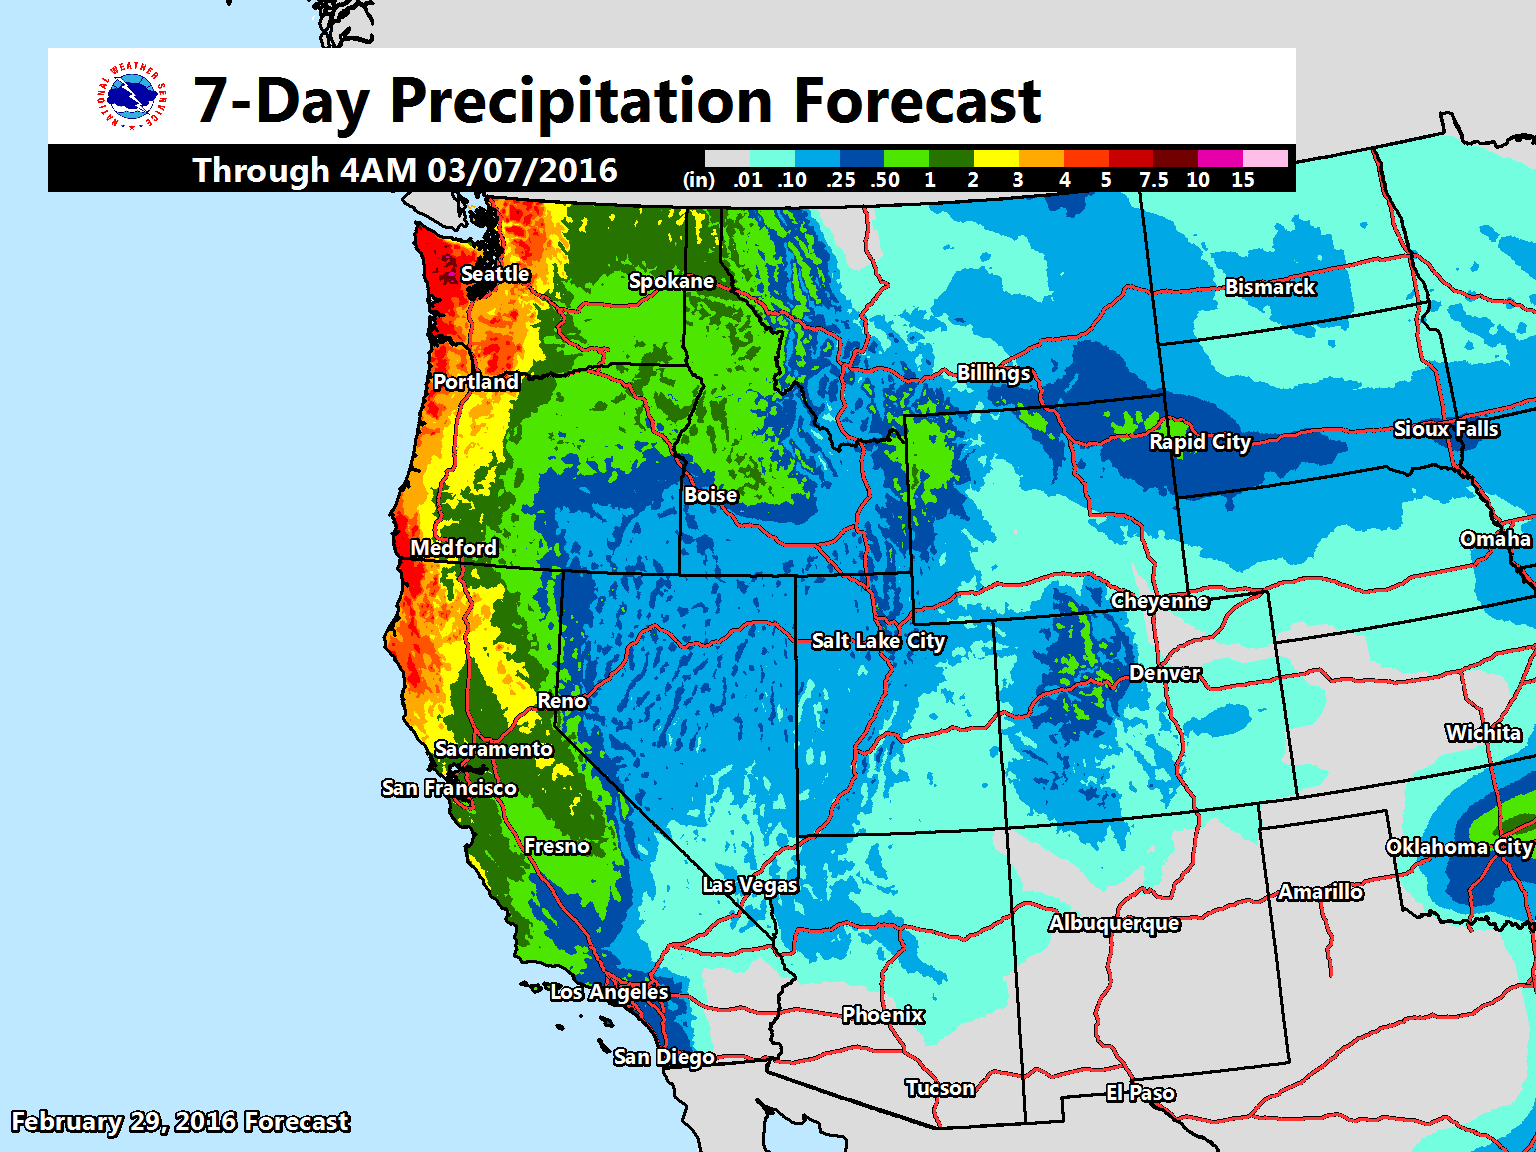 """As has been recently advertised, a more active storm track is becoming more likely and will result in widespread precipitation into this weekend and next week. The image shows the 7-day precipitation forecast across the West."" - NOAA, Feb. 29"